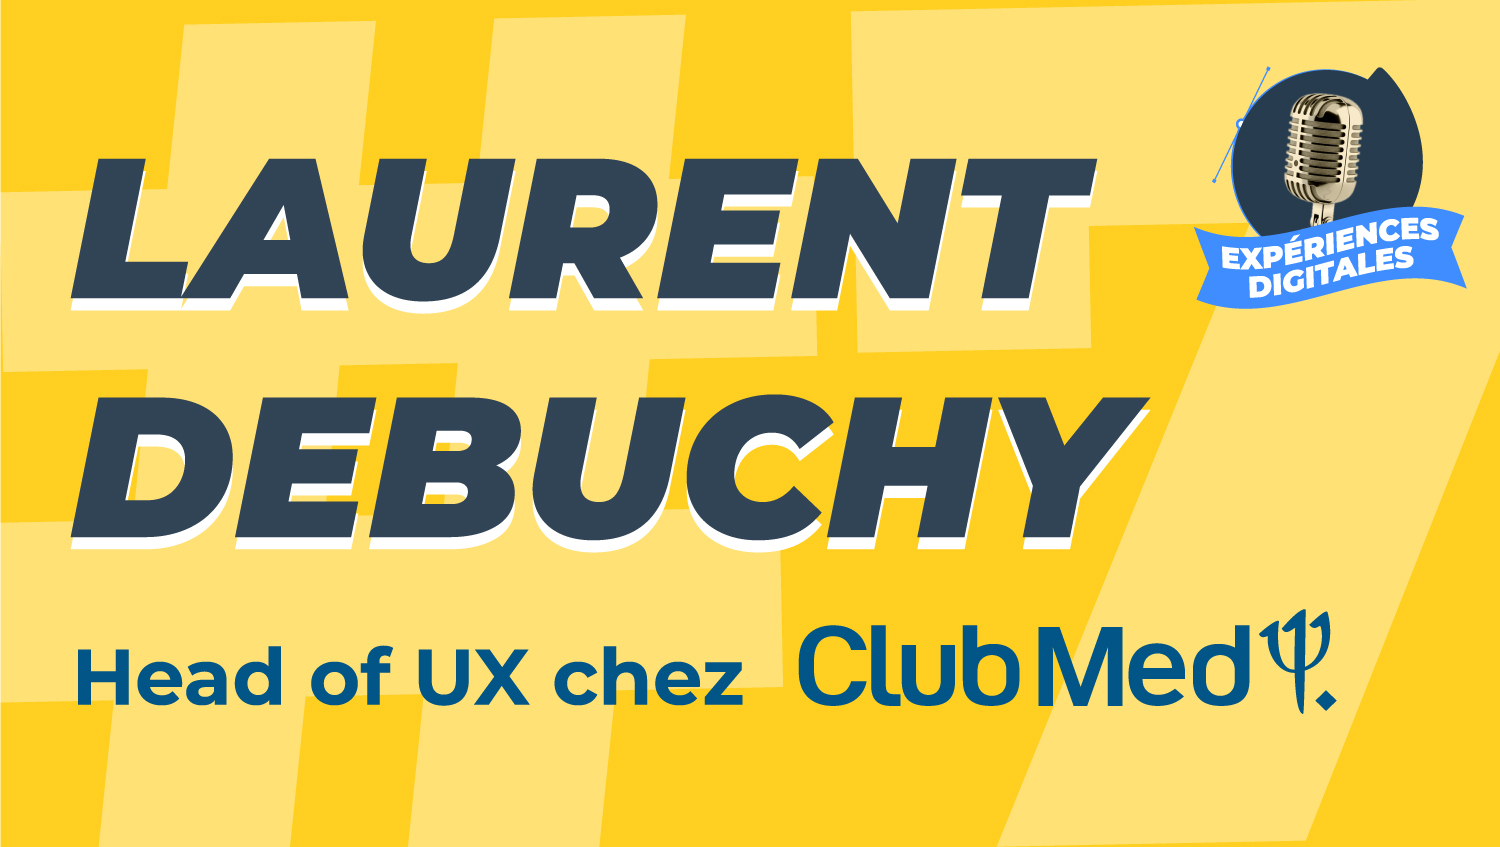 Laurent Debuchy Podcast Club Med